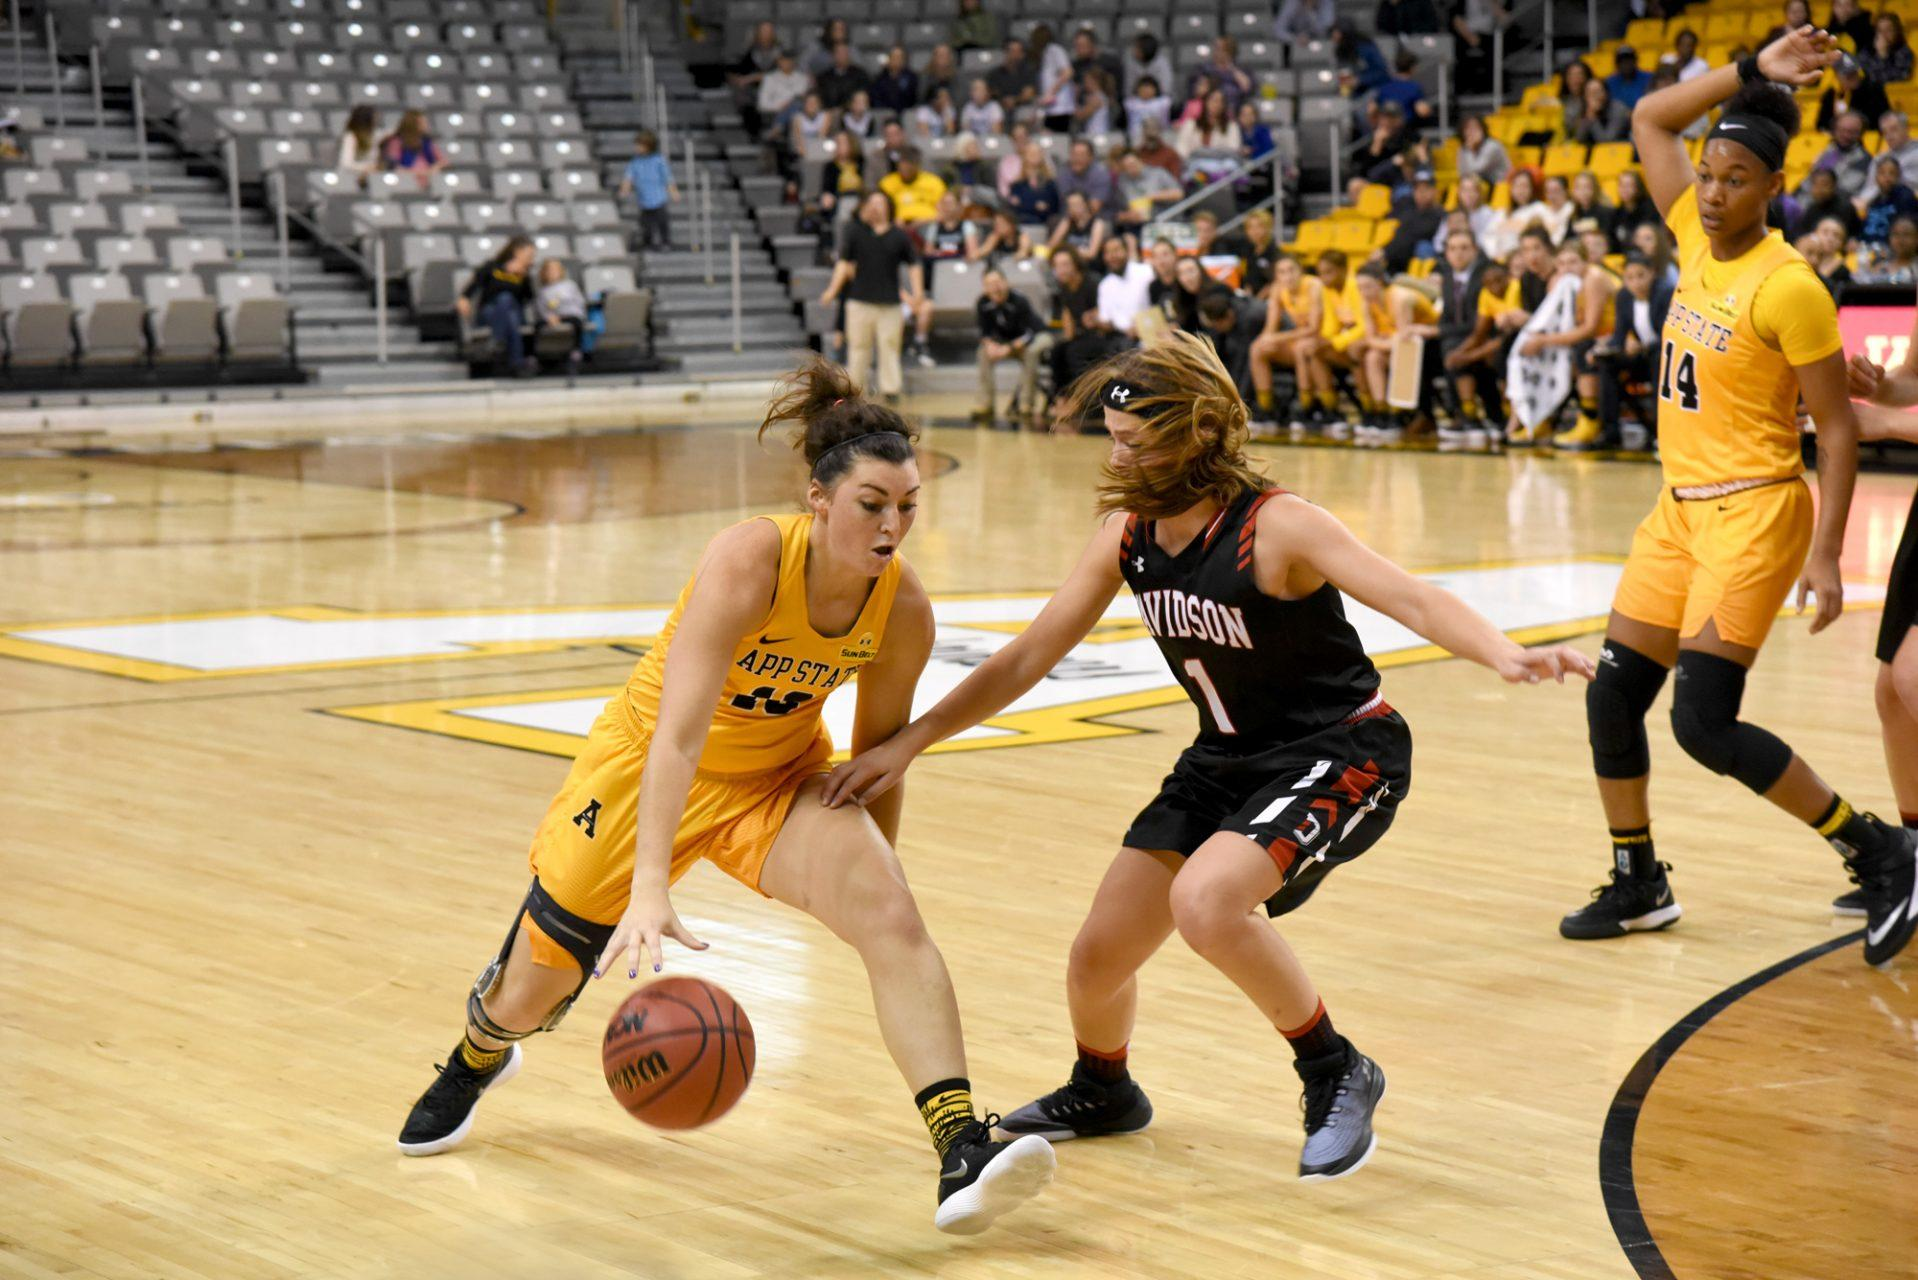 Sophomore+guard+Kaila+Craven+dribbling+the+ball+around+a+player+from+Davidson+and+towards+the+basket+On+Sunday%2C+November+19th.+The+Mountaineers+lost+the+game+with+the+final+score+being+59-57.